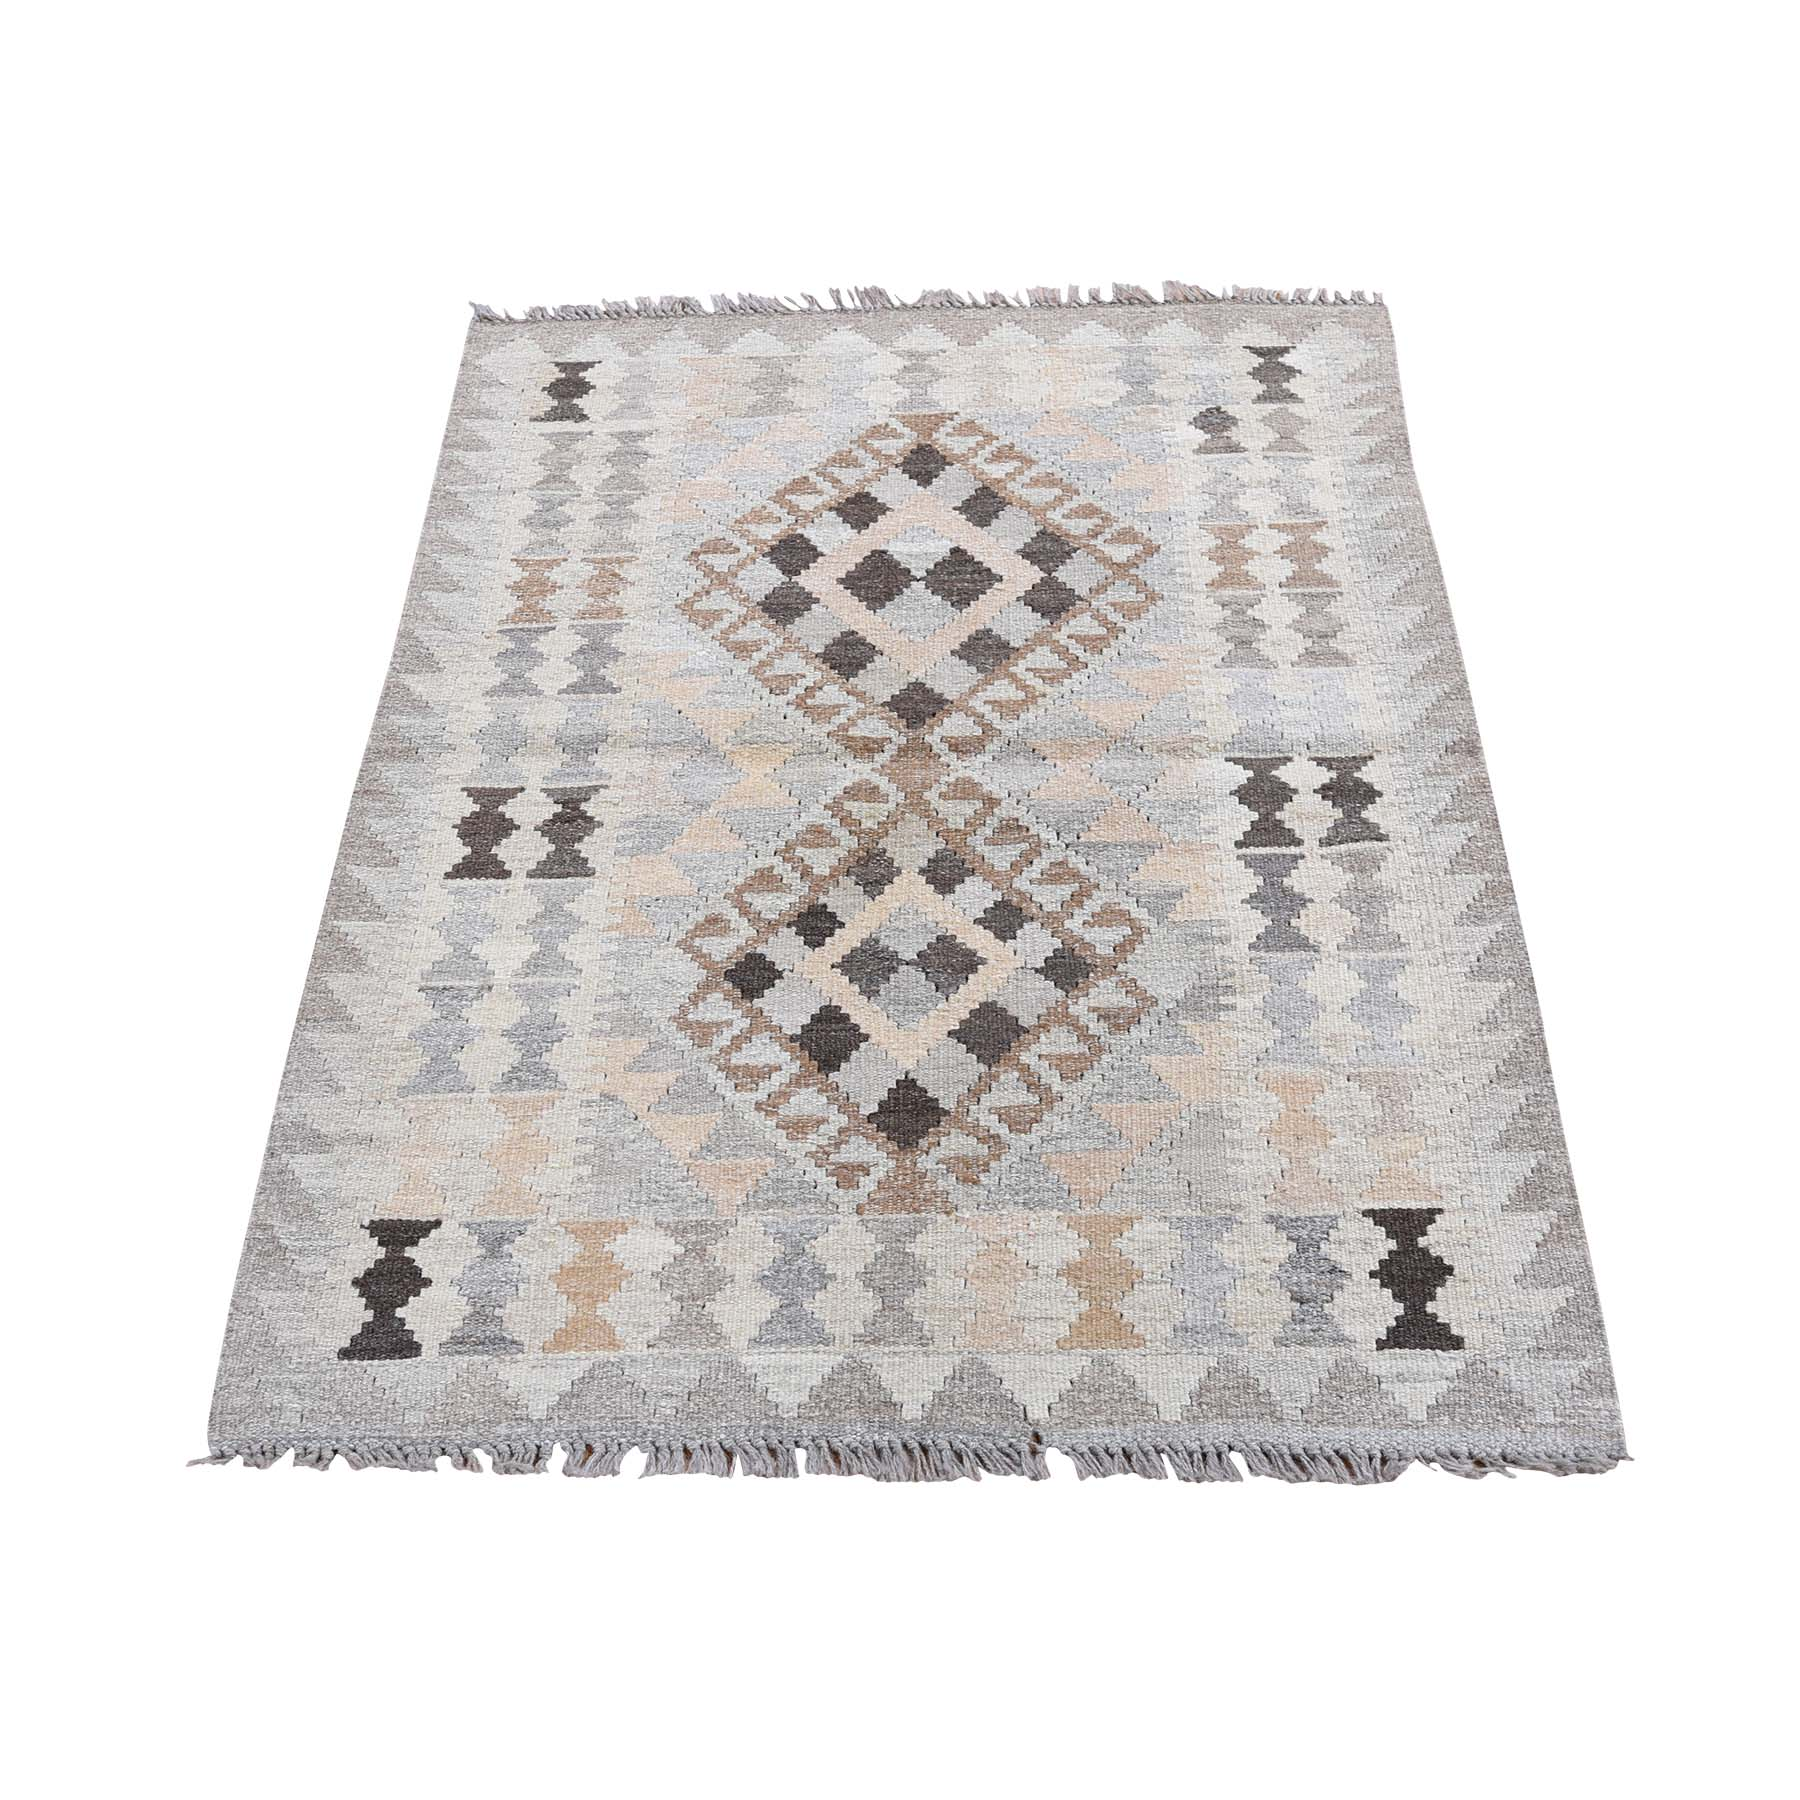 "2'9""x3'10"" Undyed Natural Wool Afghan Kilim Reversible Hand Woven Oriental Rug"